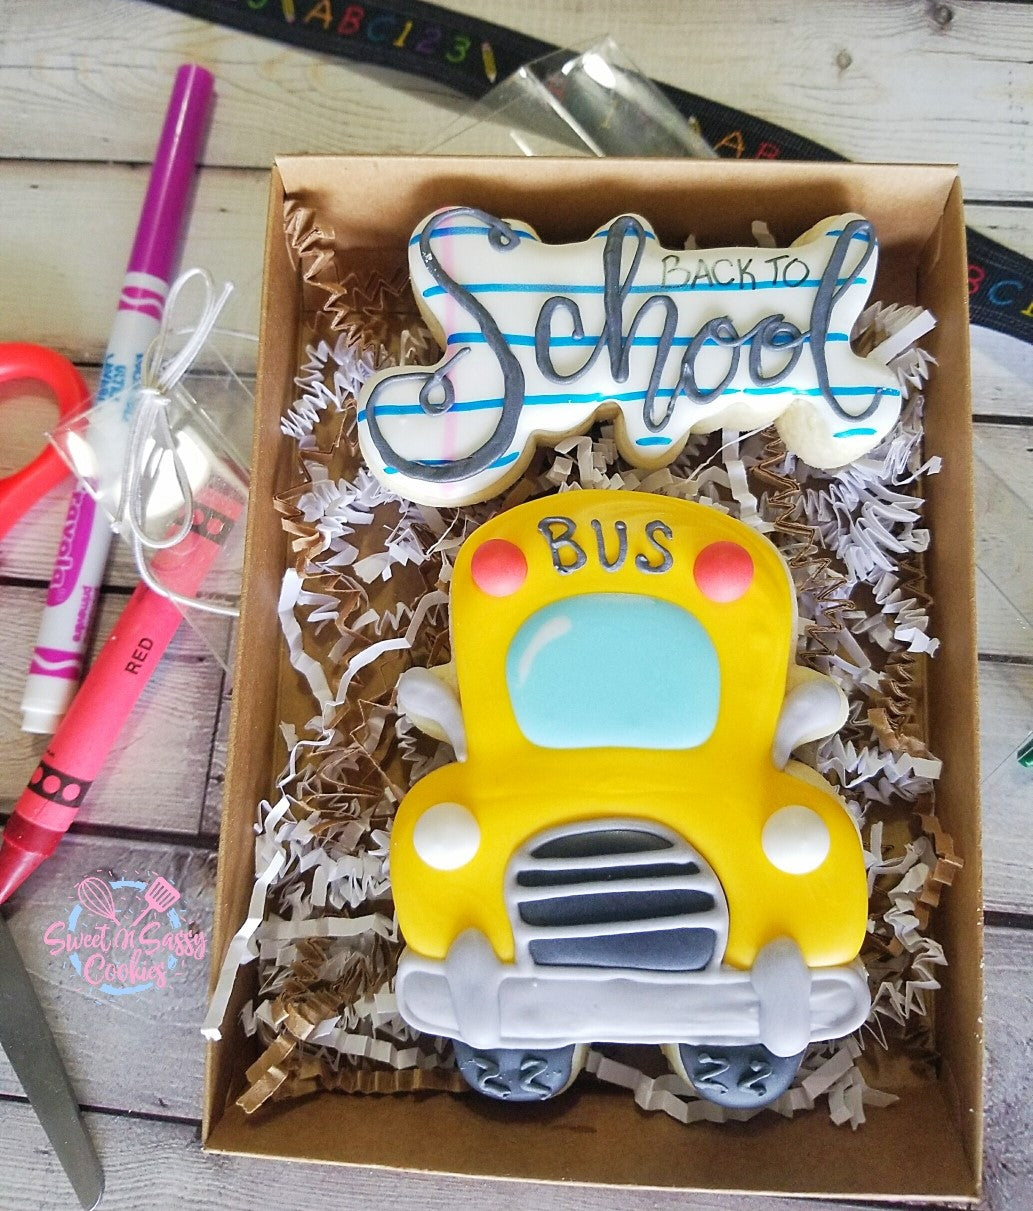 Back to School - Bus Large Boxed Set